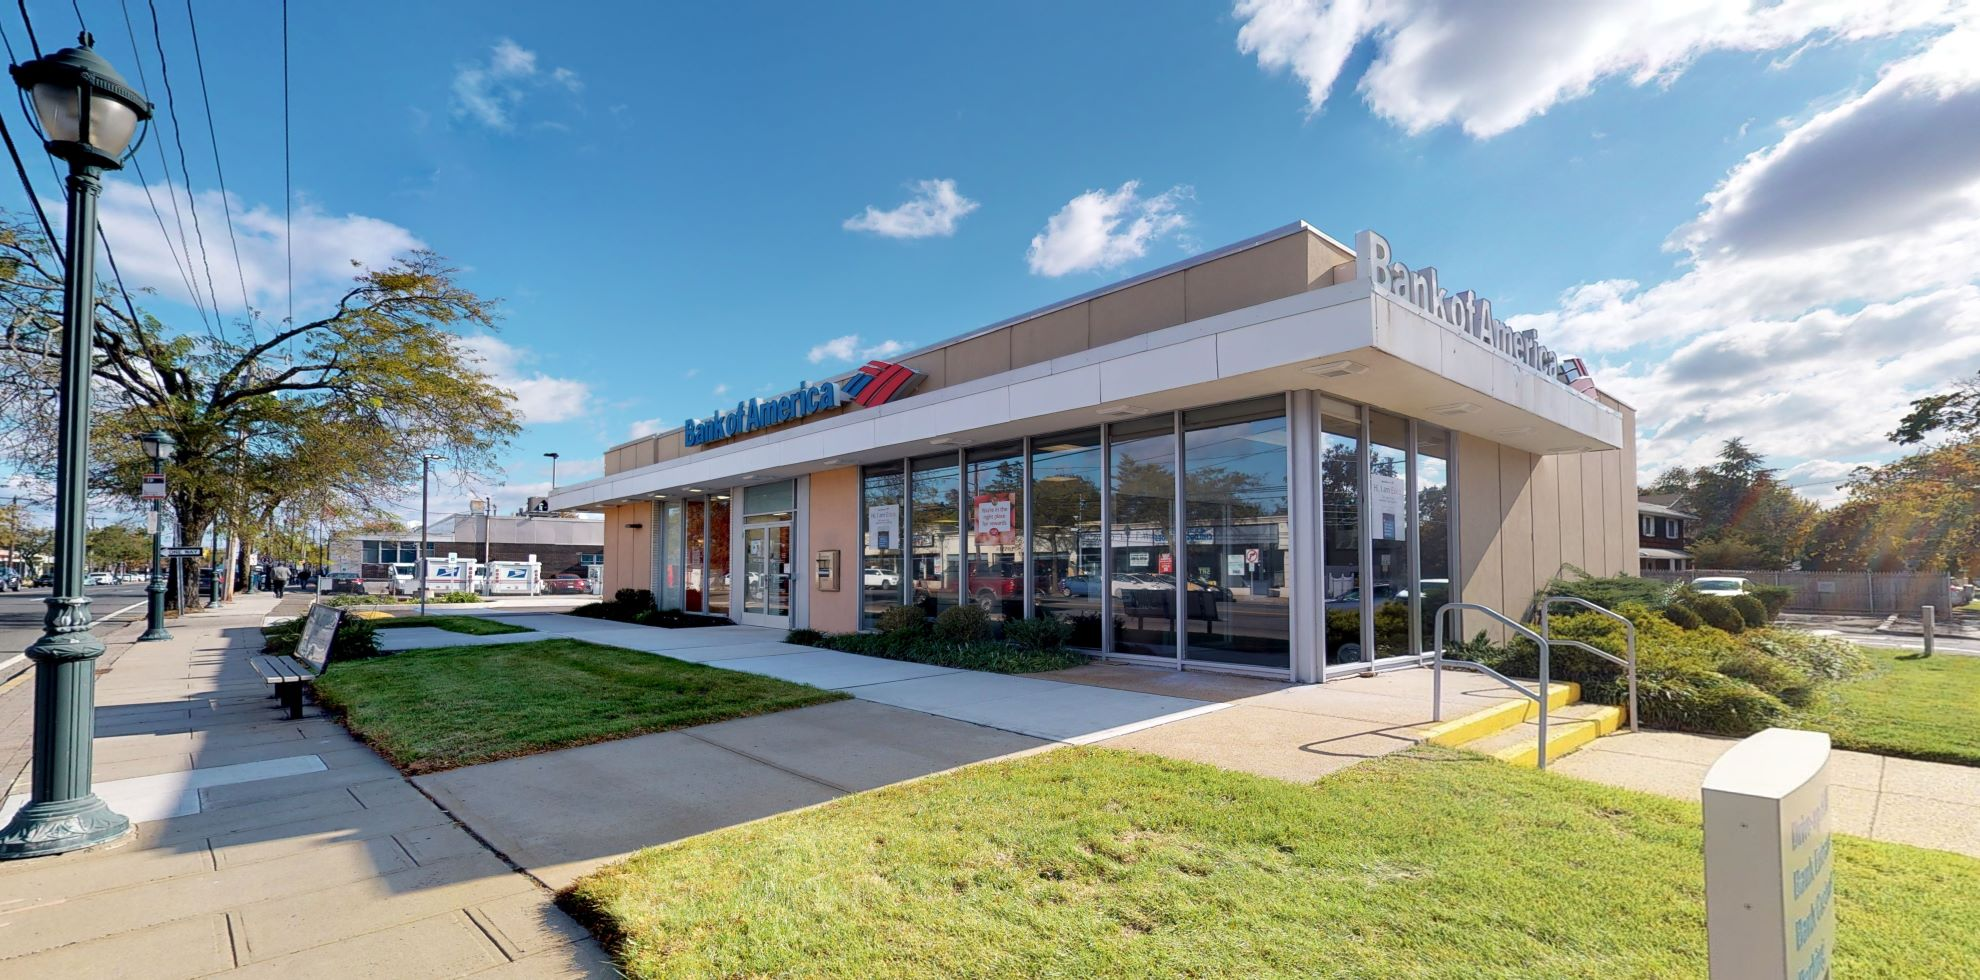 Bank of America financial center with drive-thru ATM   2020 Merrick Rd, Merrick, NY 11566